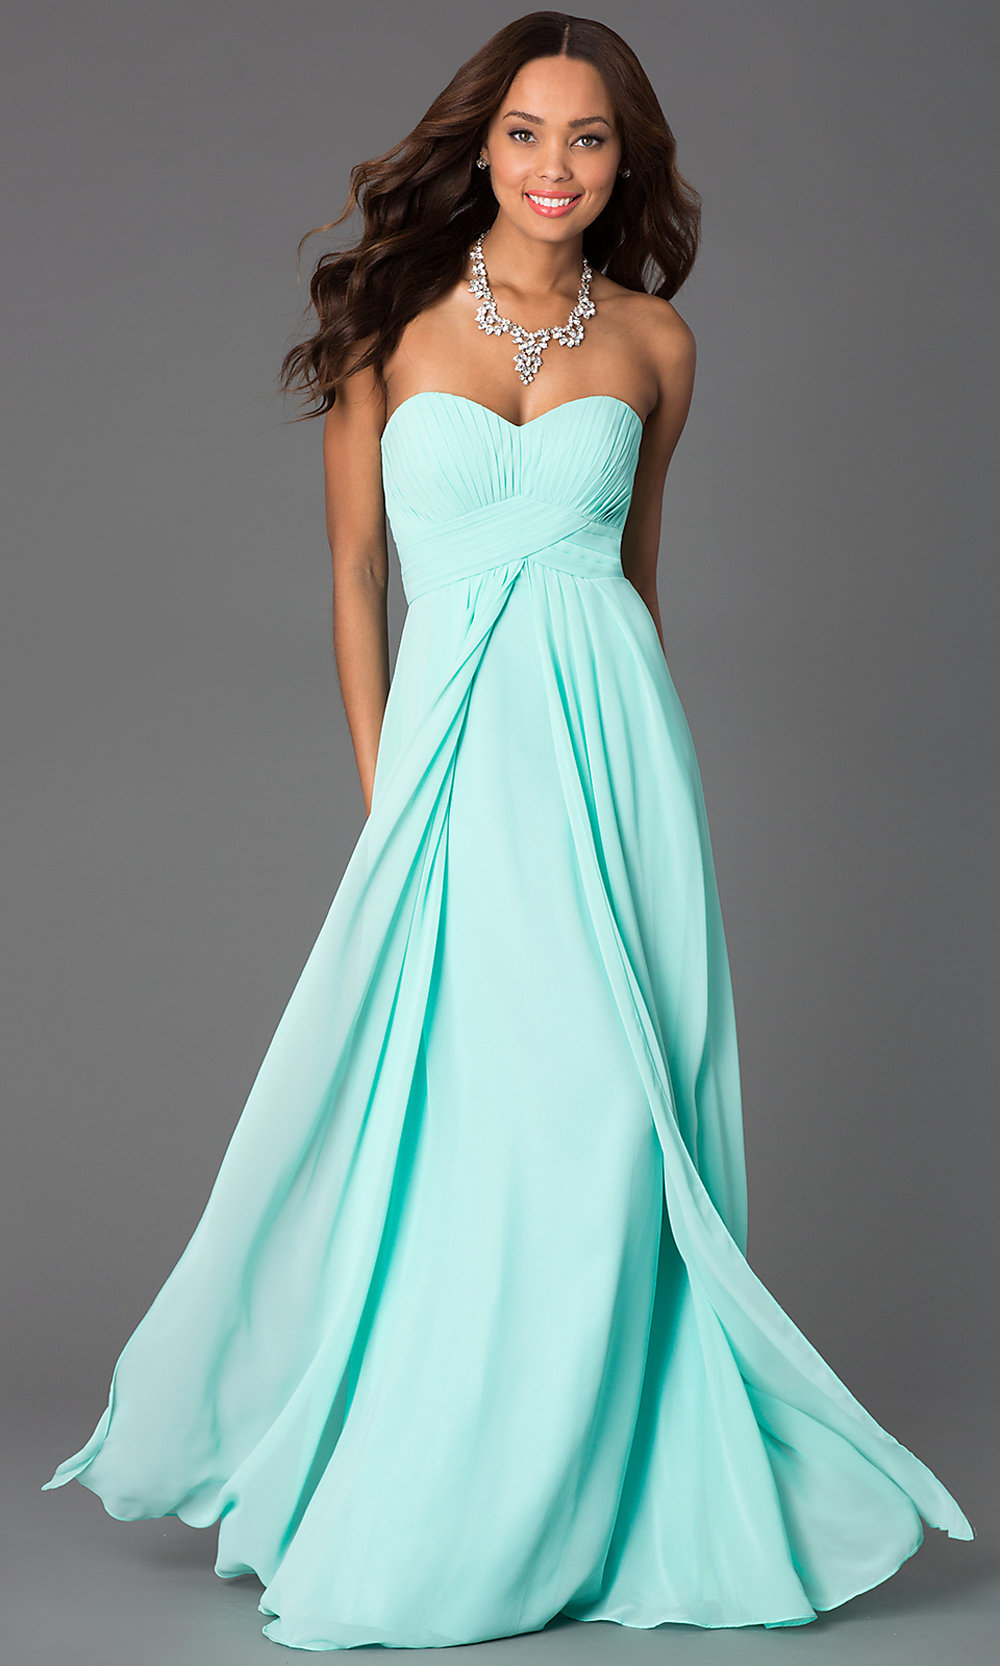 Empire Waist Strapless Prom Gown